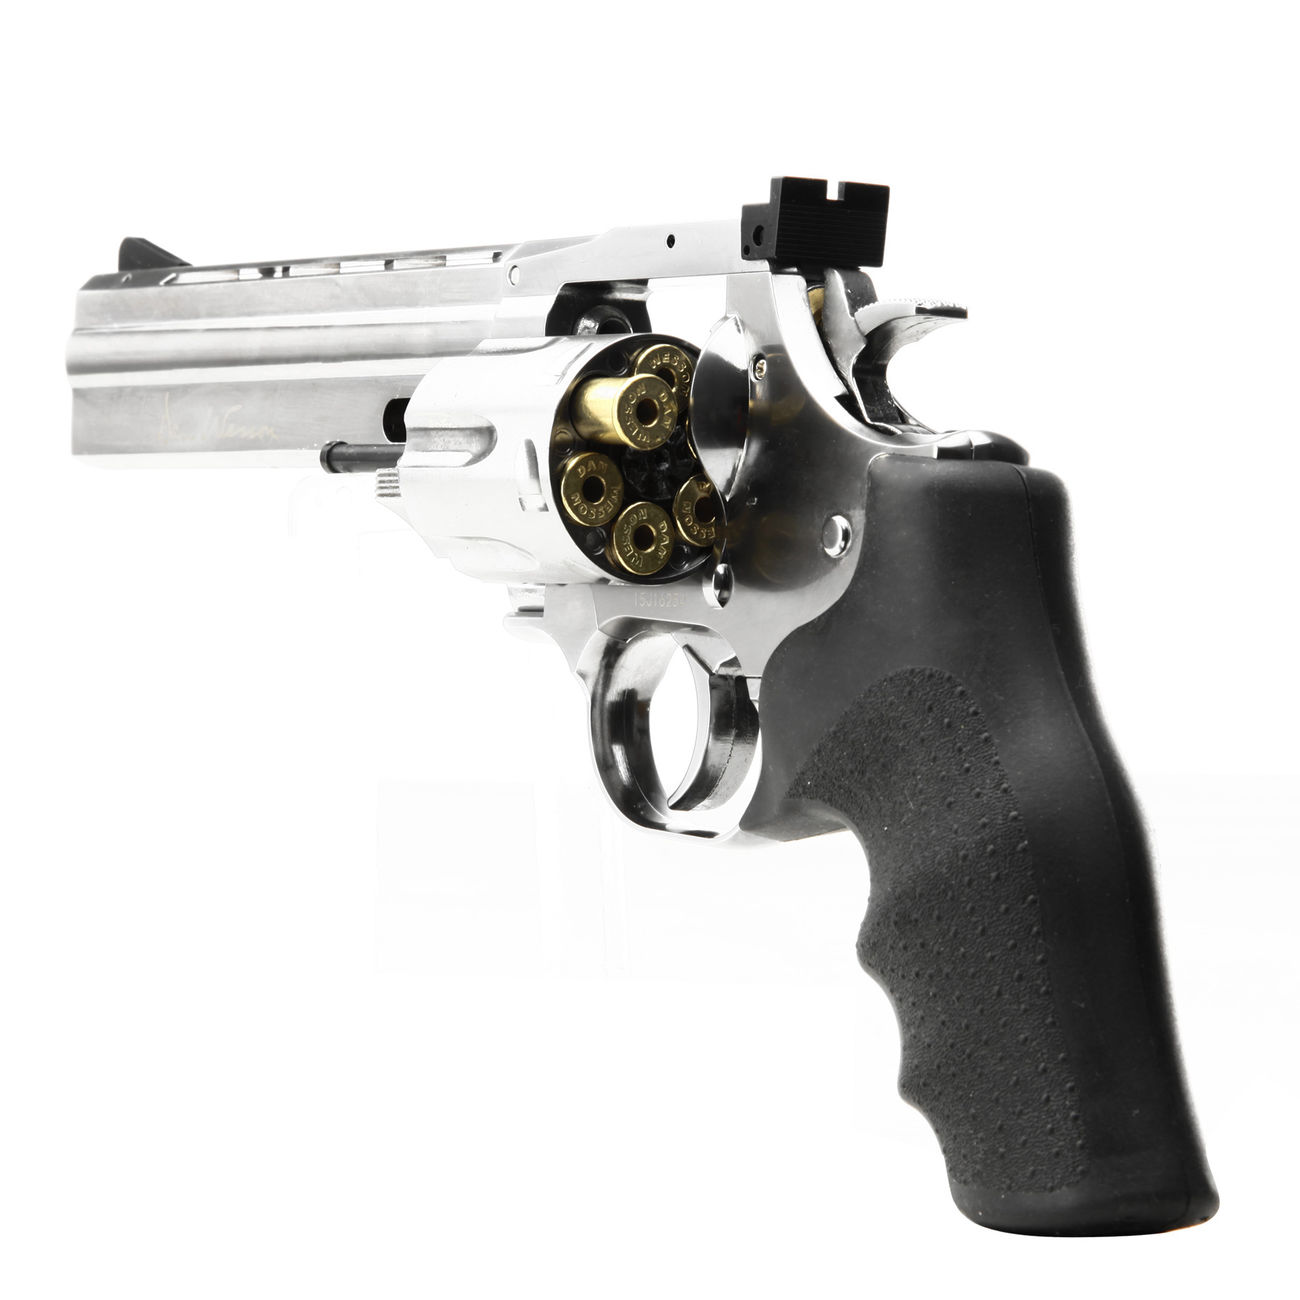 ASG Dan Wesson 715 CO2 Revolver 6 Zoll Kal. 4,5mm BB Starterset 3